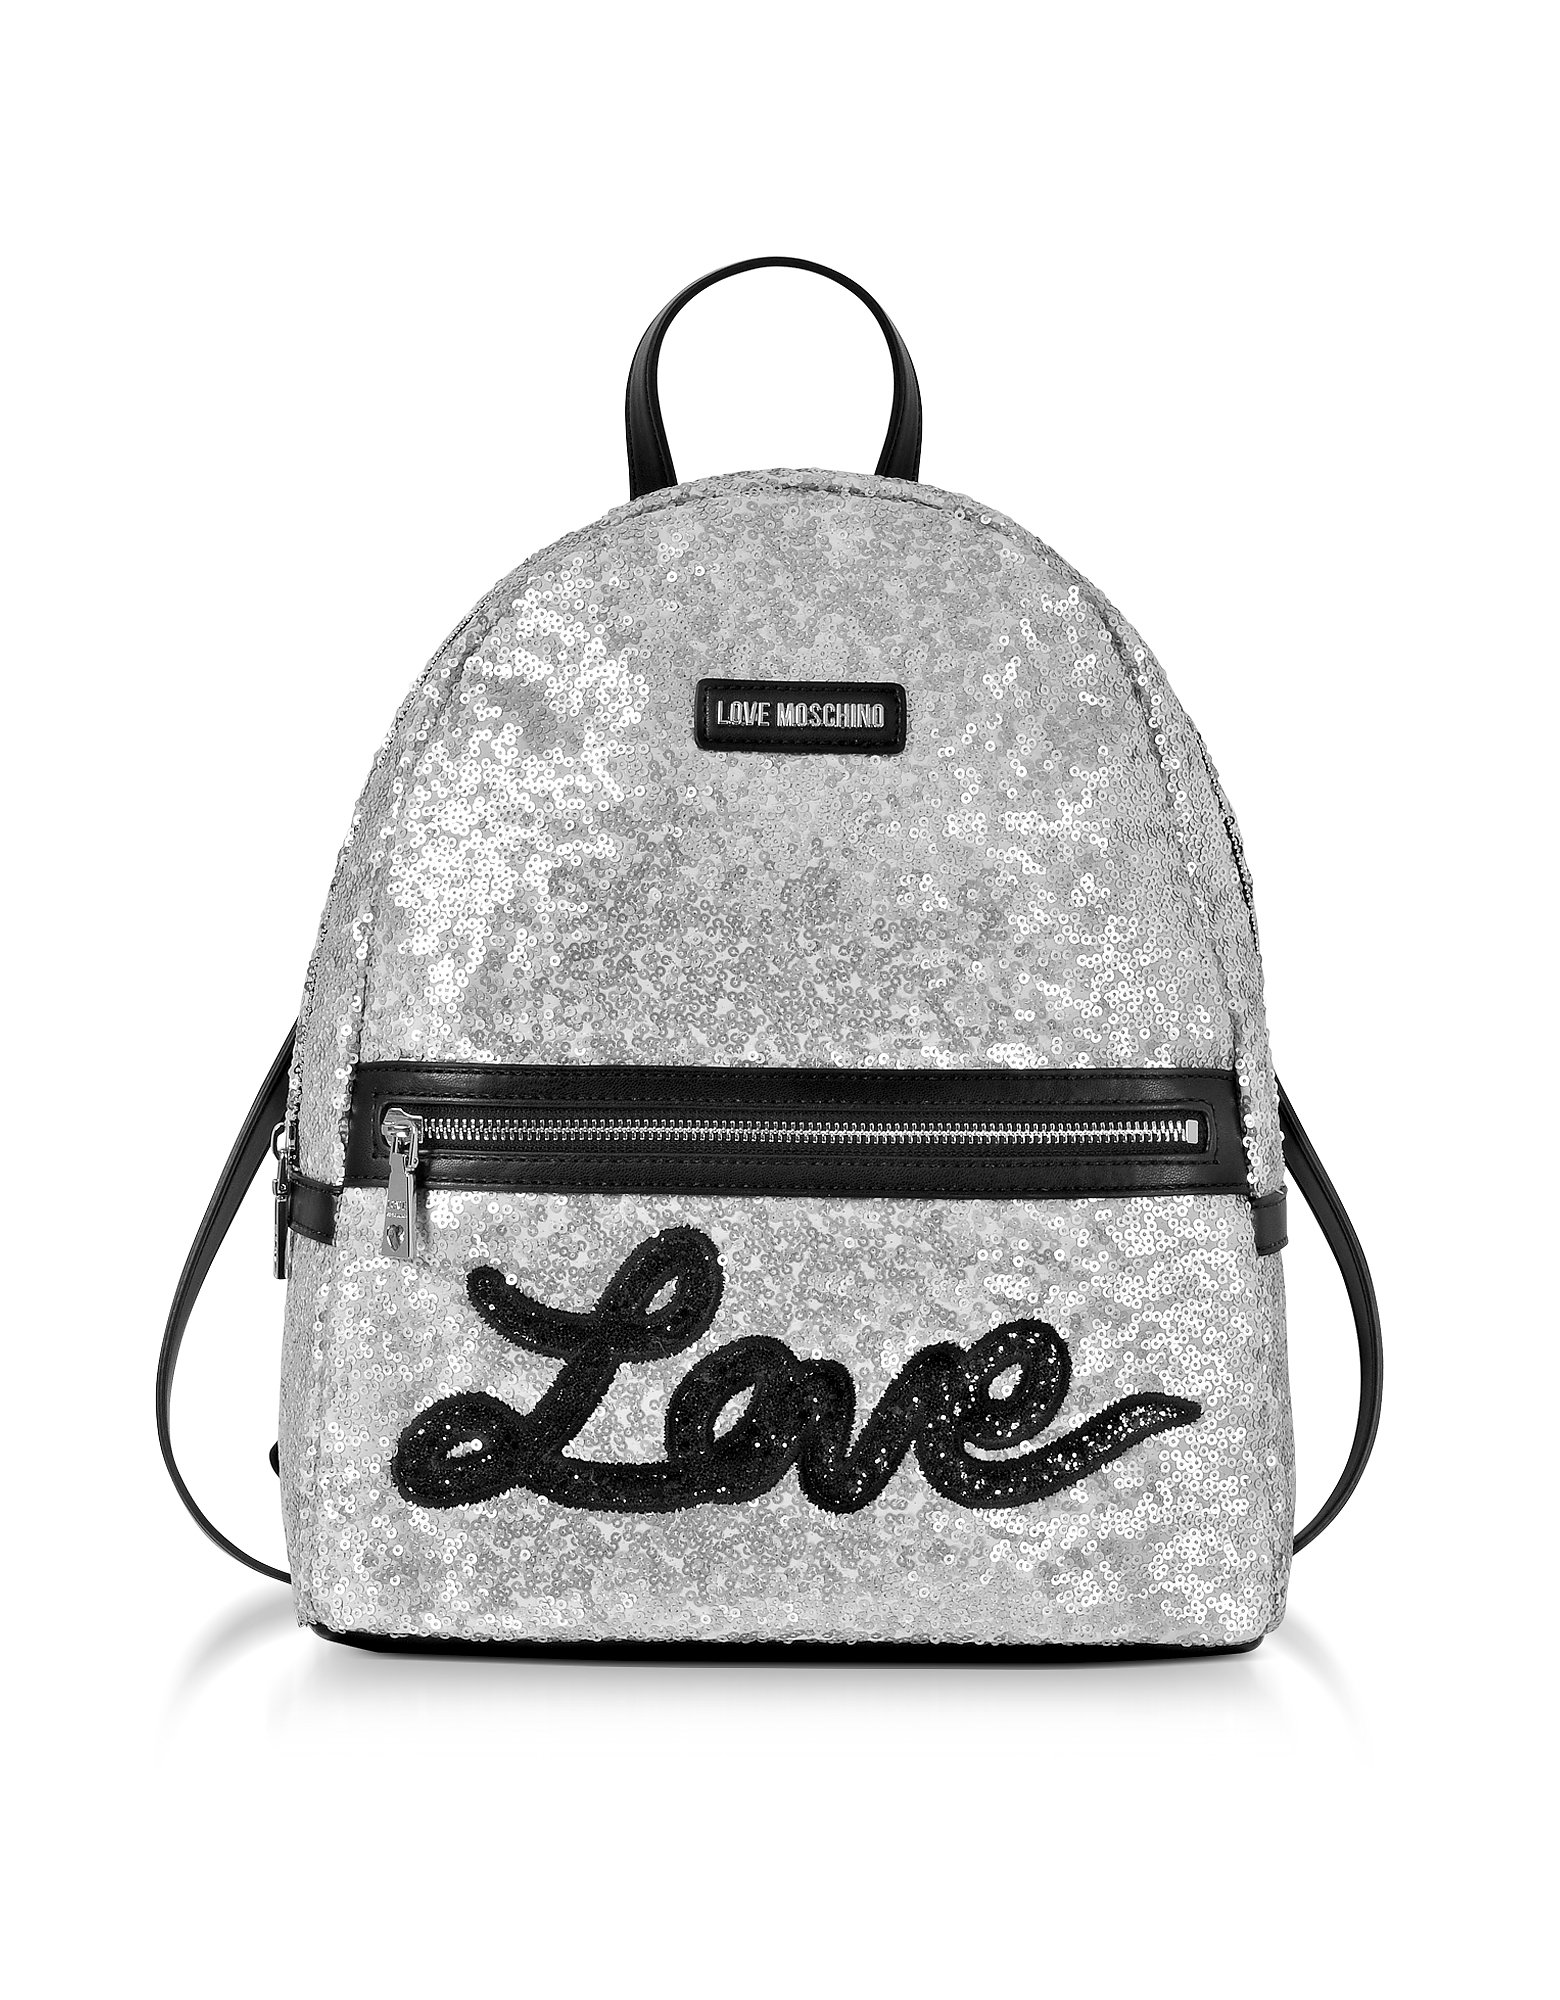 Love Moschino Women's Jc4102pp15lr0902 Silver Leather Backpack